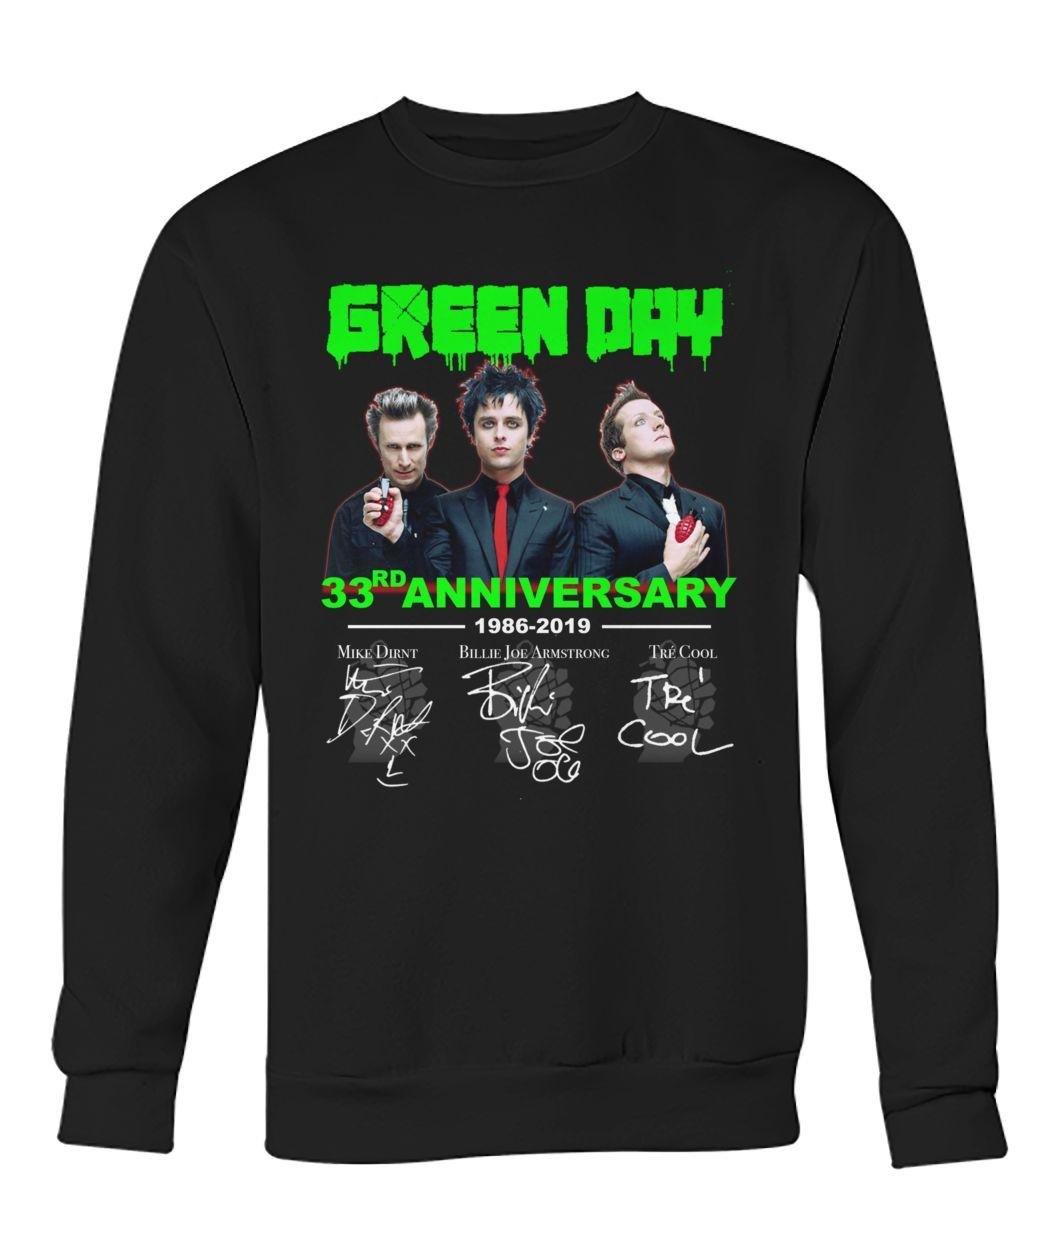 Official Green Day 33rd Anniversary 1986-2019 signatures shirt